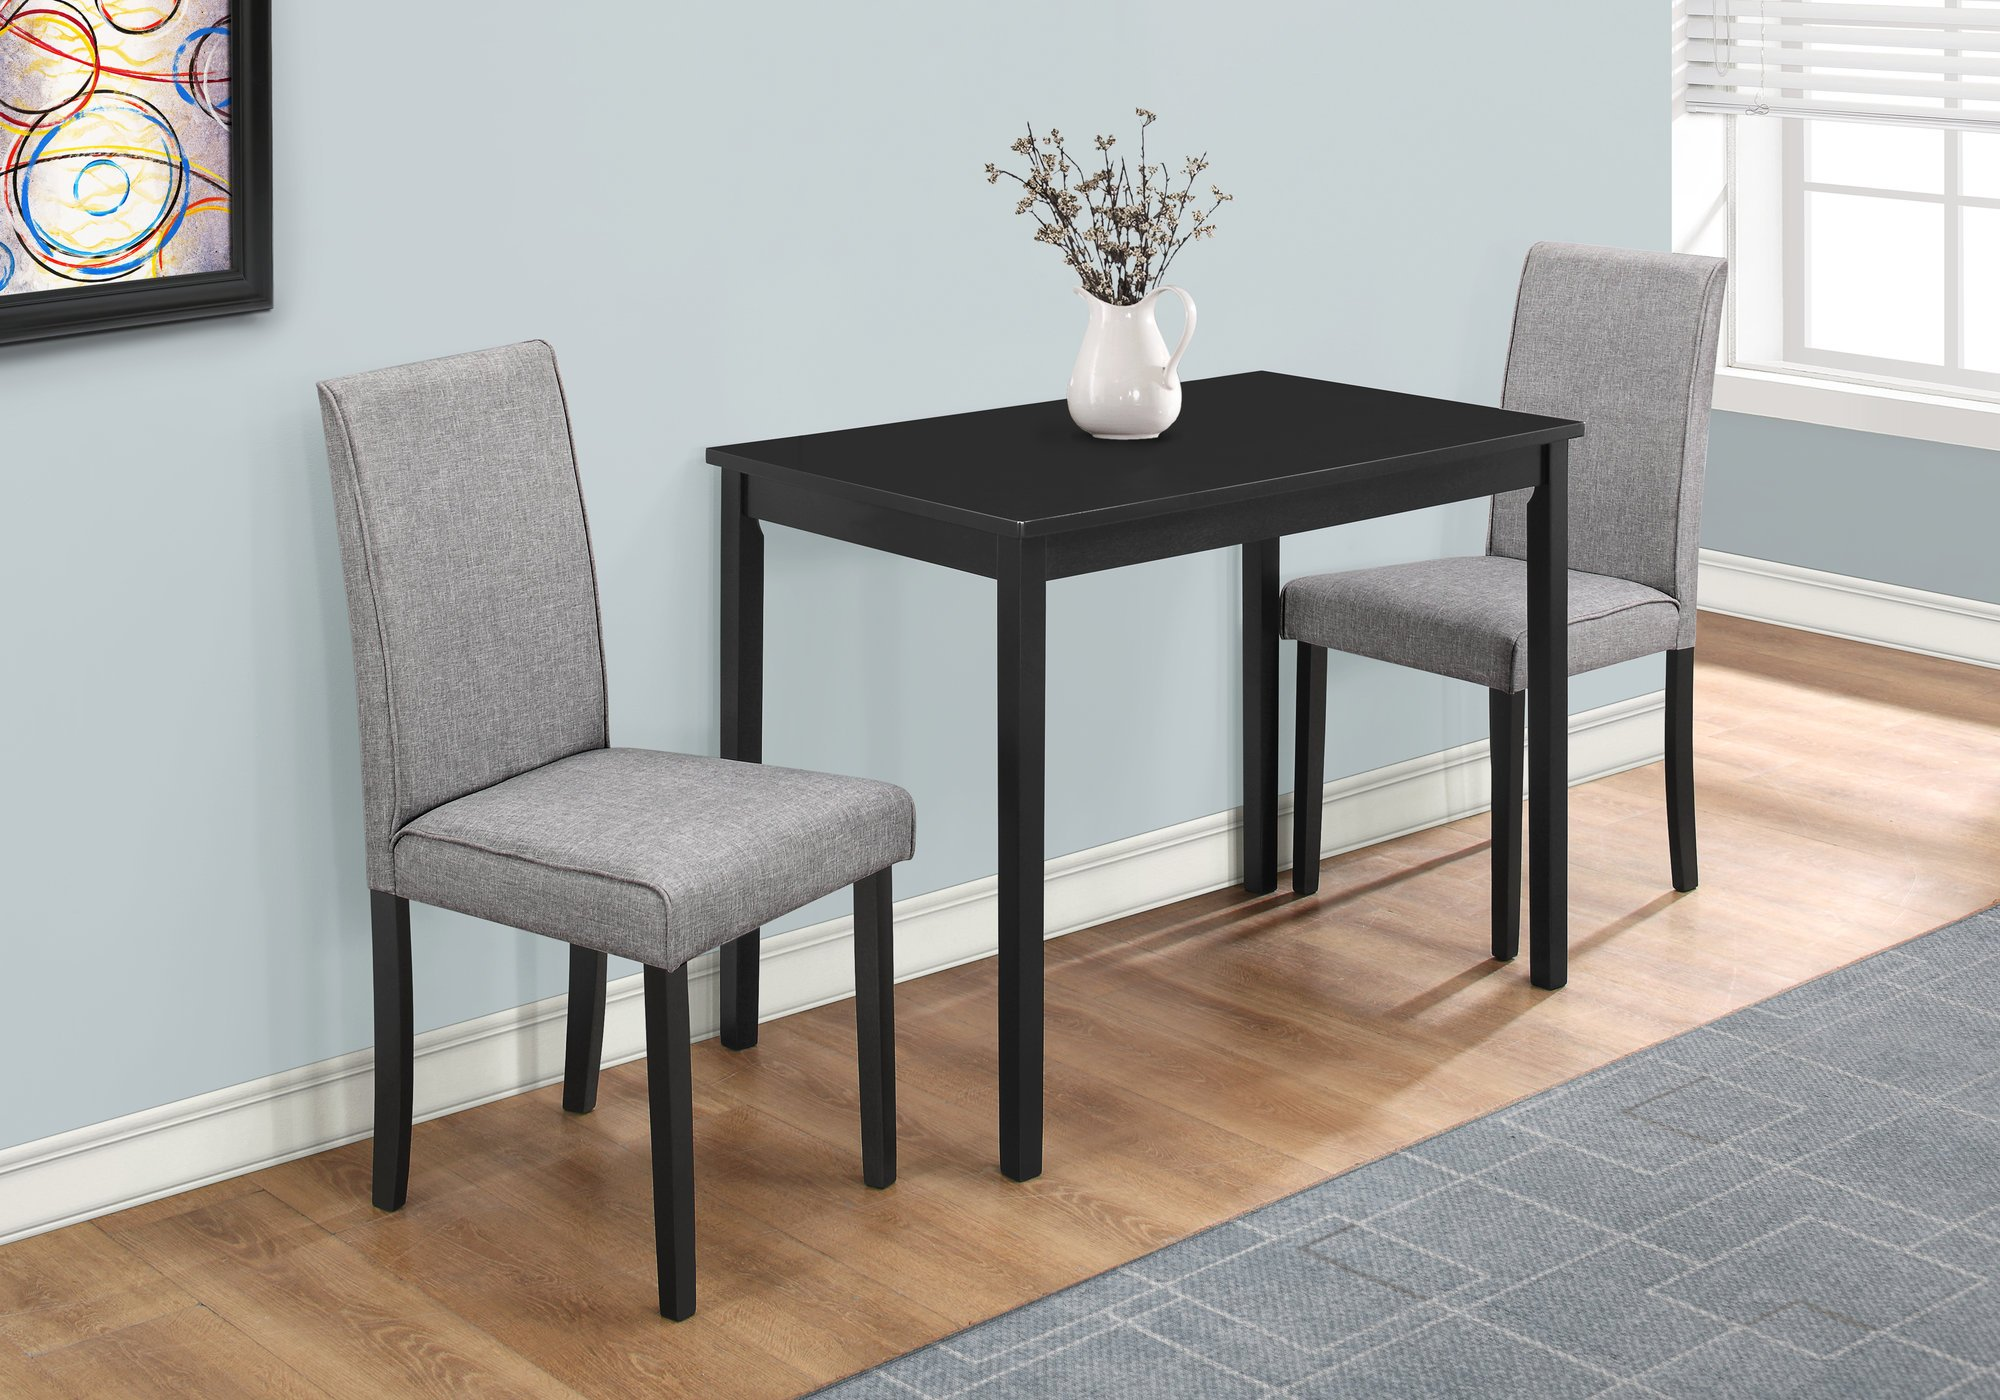 Monarch Specialties I 1016, Dining Set Set, Parson Chairs, Black/Grey, 3pcs by Monarch Specialties